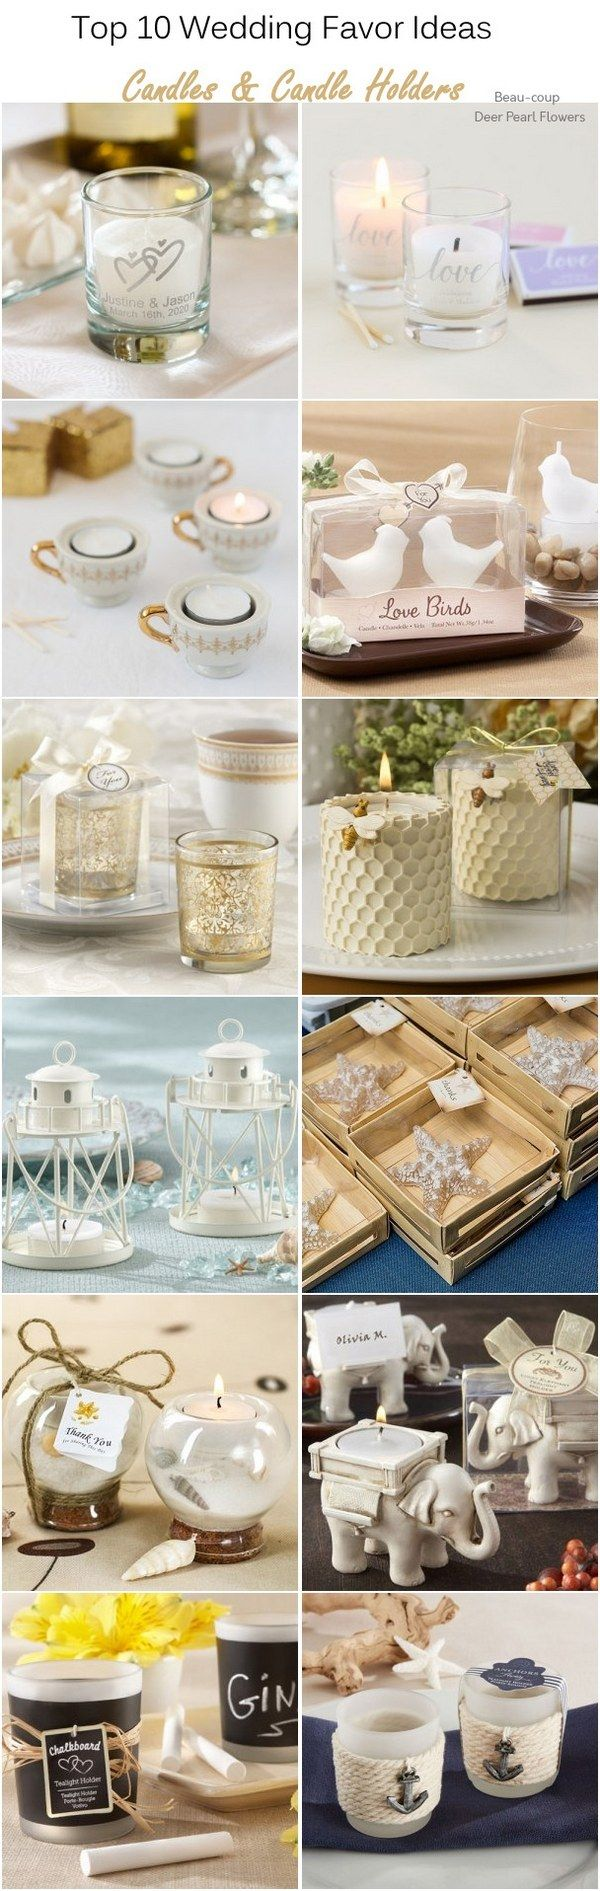 Top 10 Wedding Favor Ideas that Your Guests Will Actually Like ...